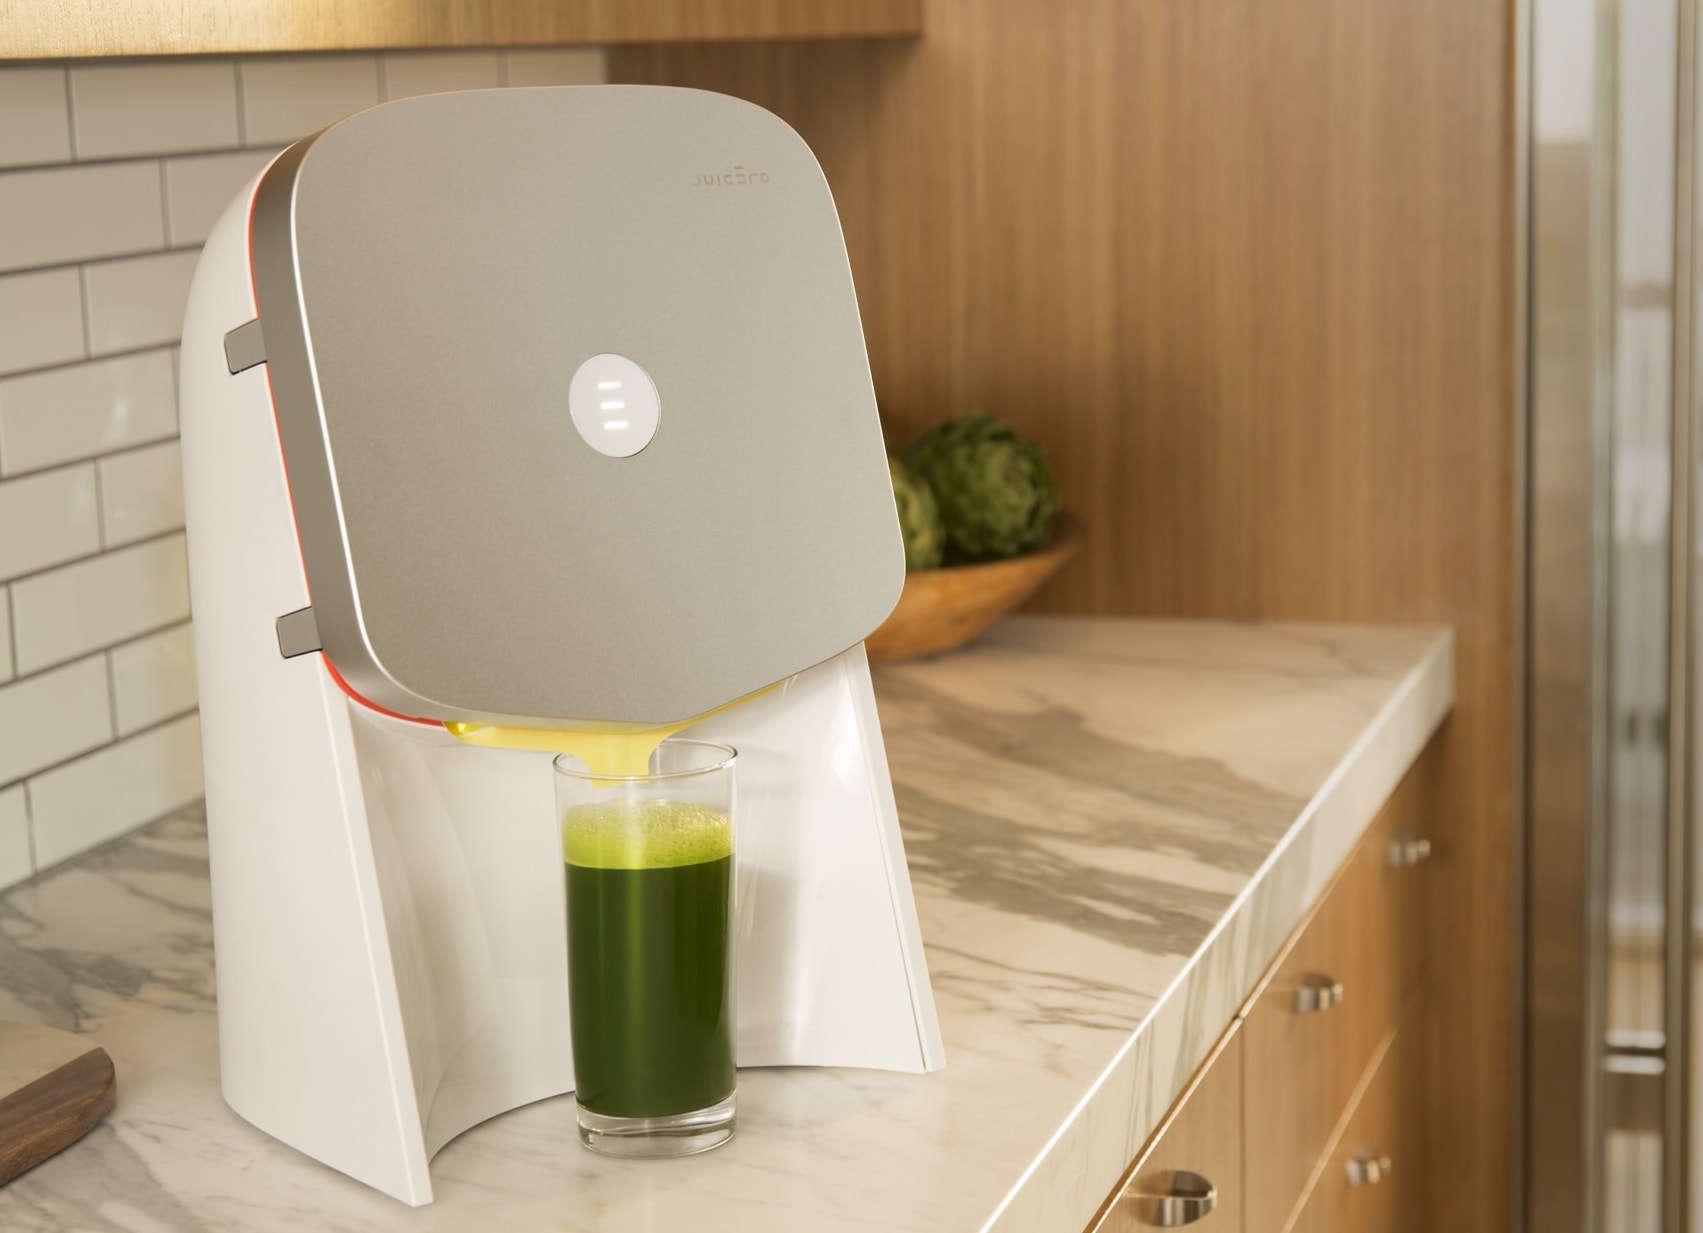 The Juicero is like a Keurig for juicing.